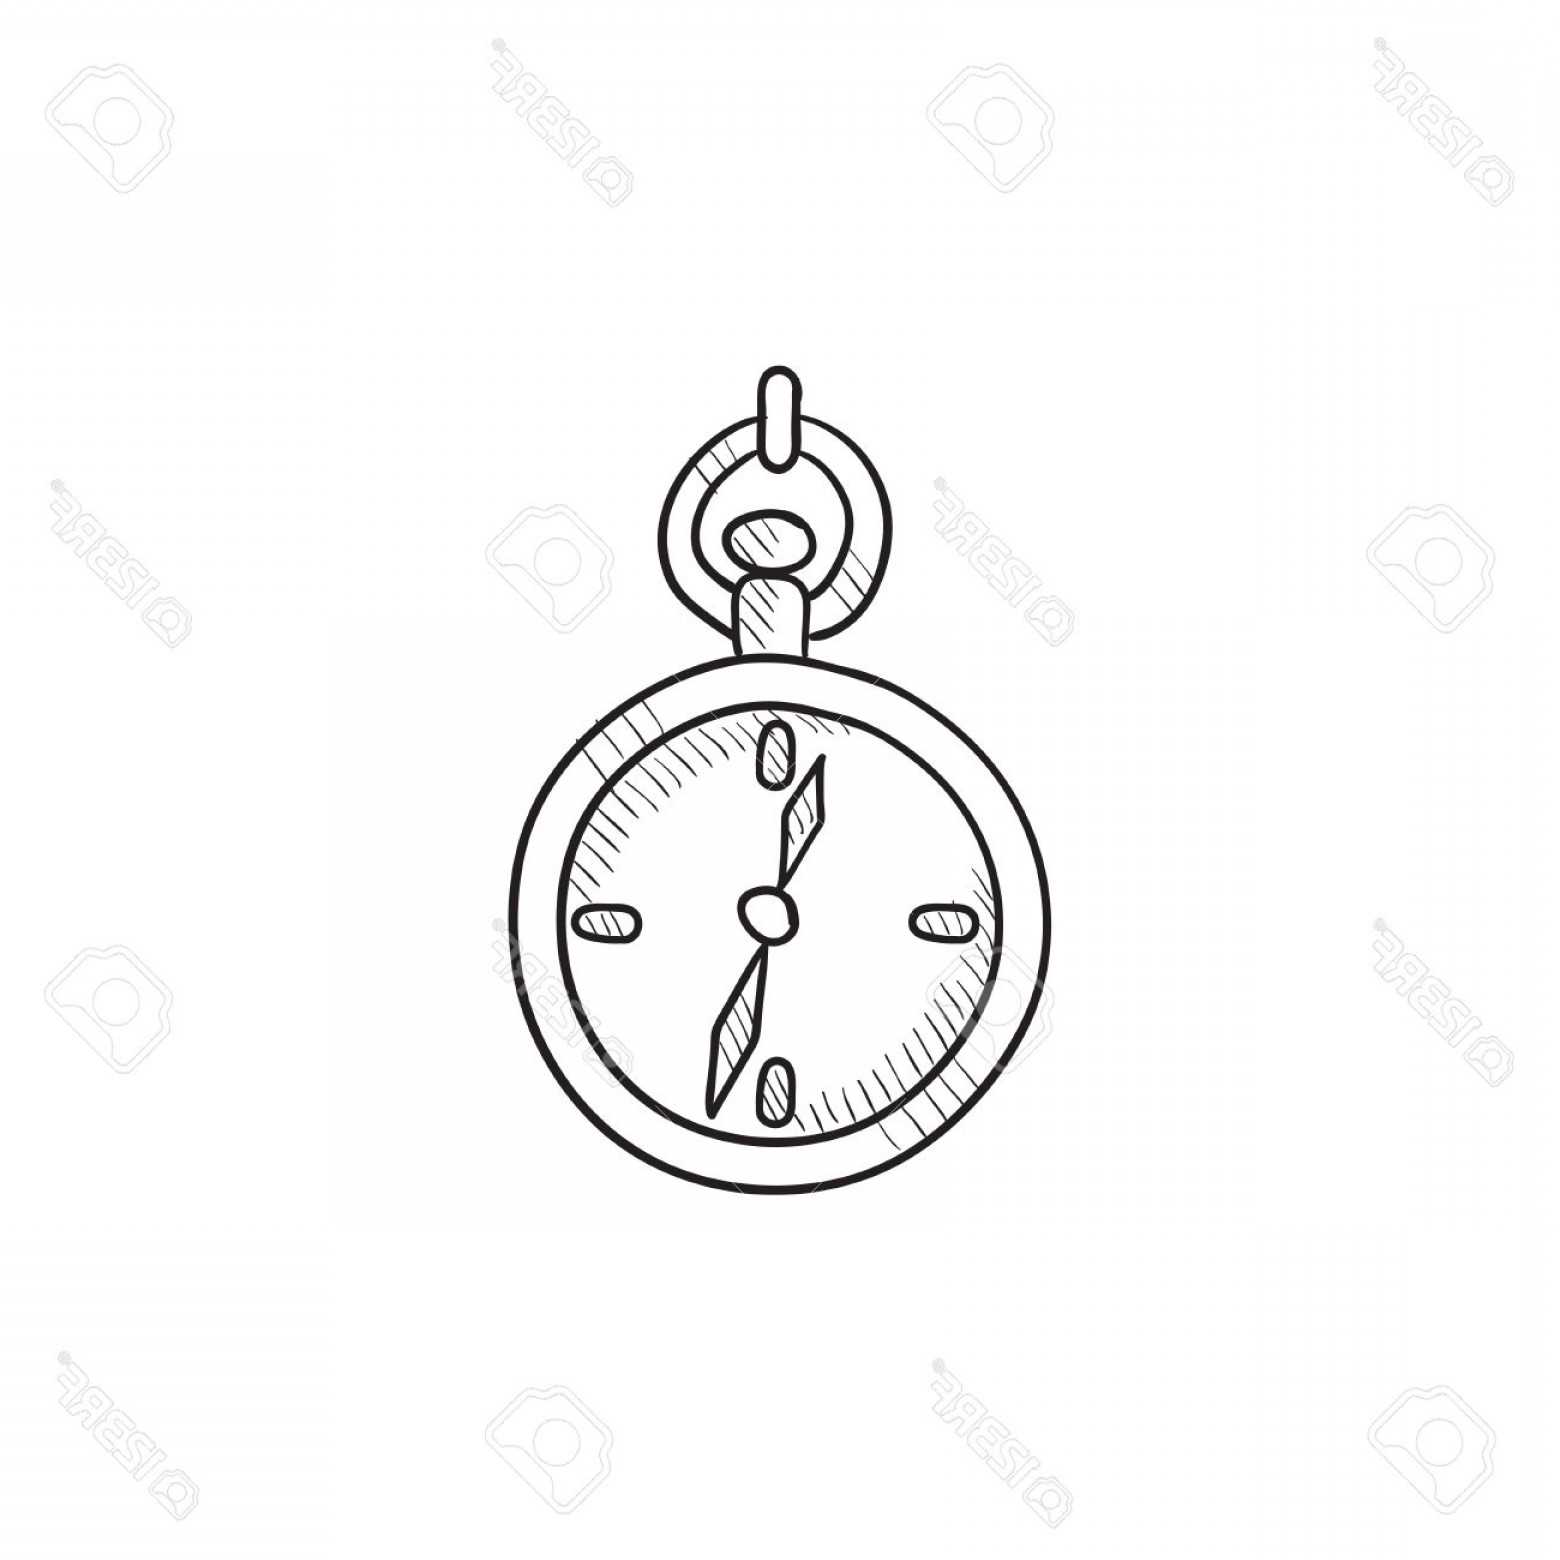 1560x1560 Photostock Vector Pocket Watch Sketch Icon For Web Mobile And